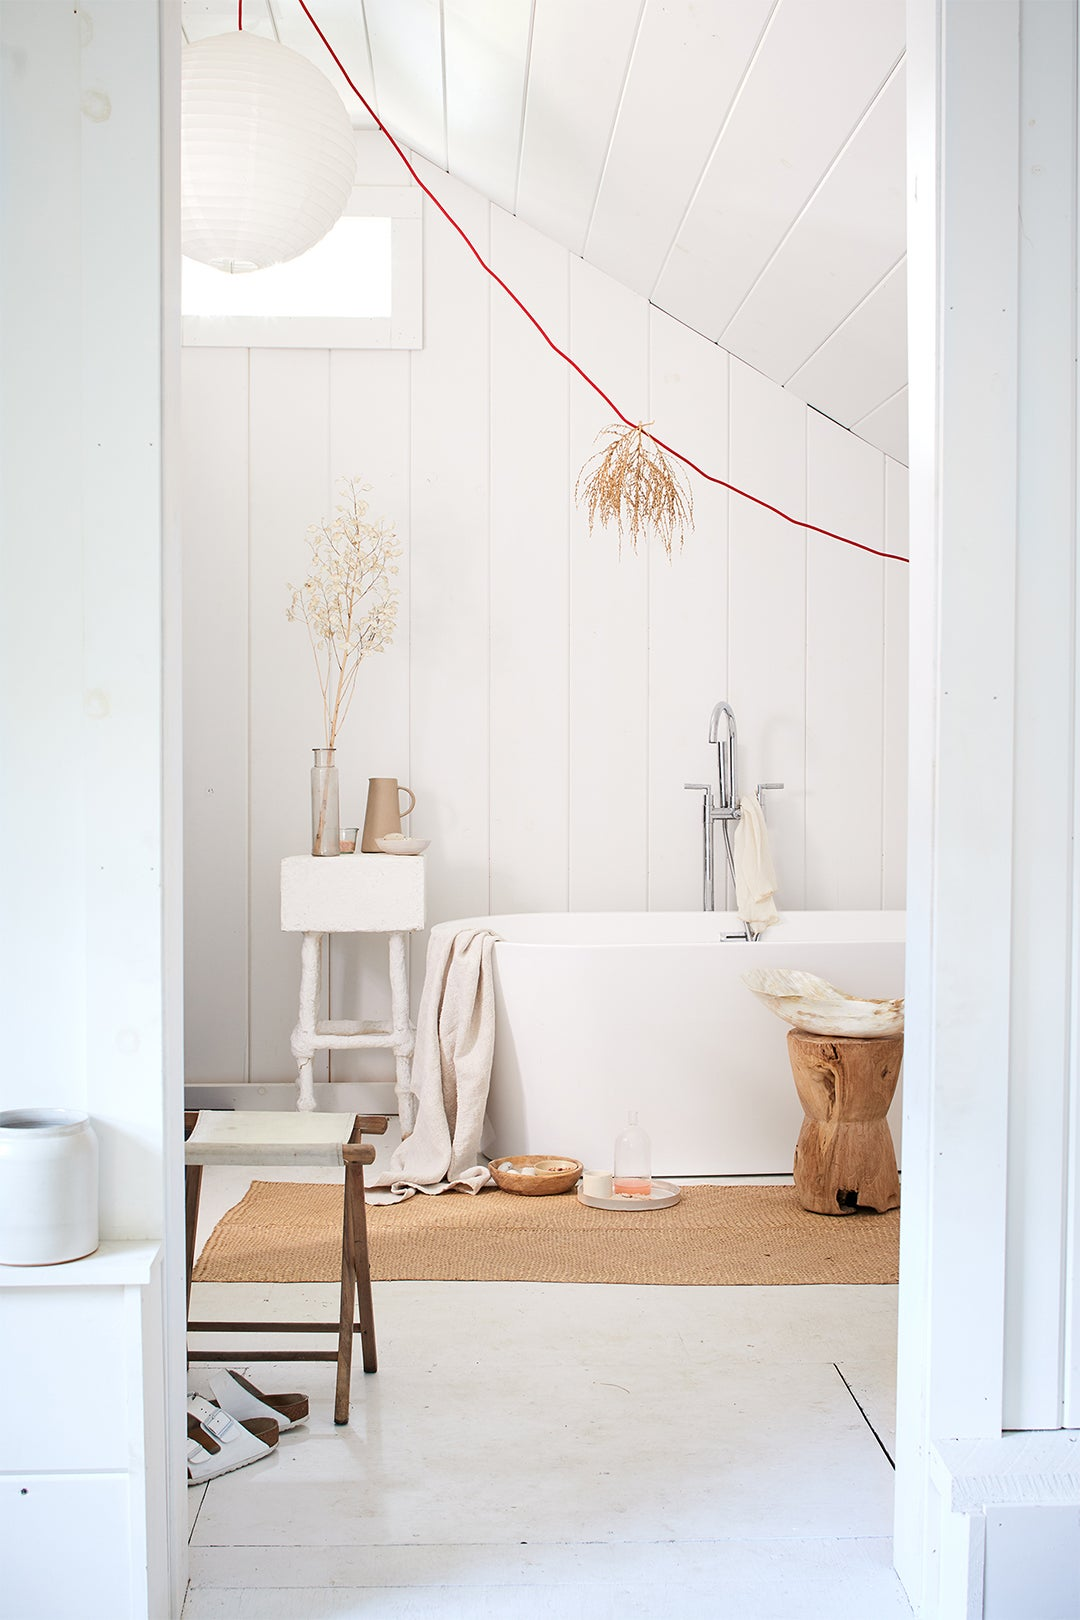 4 Stay-at-Home Spa Ideas to Channel Your Dream Destination